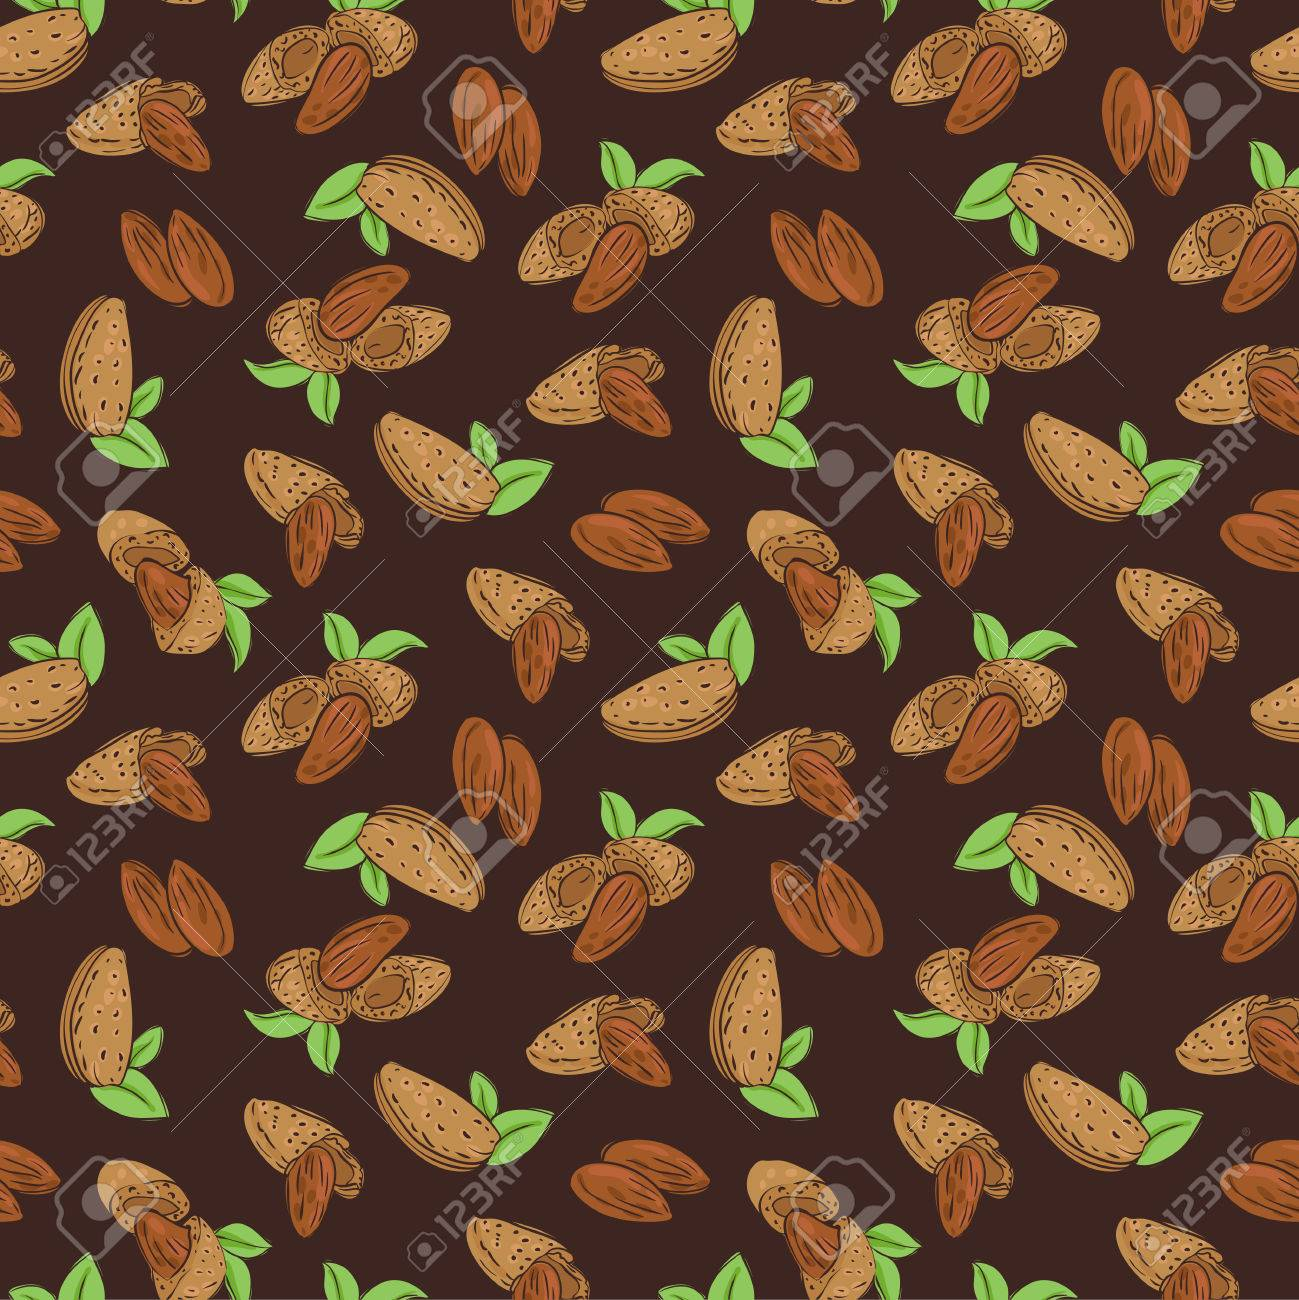 vector seamless wallpaper with almond nuts in different forms